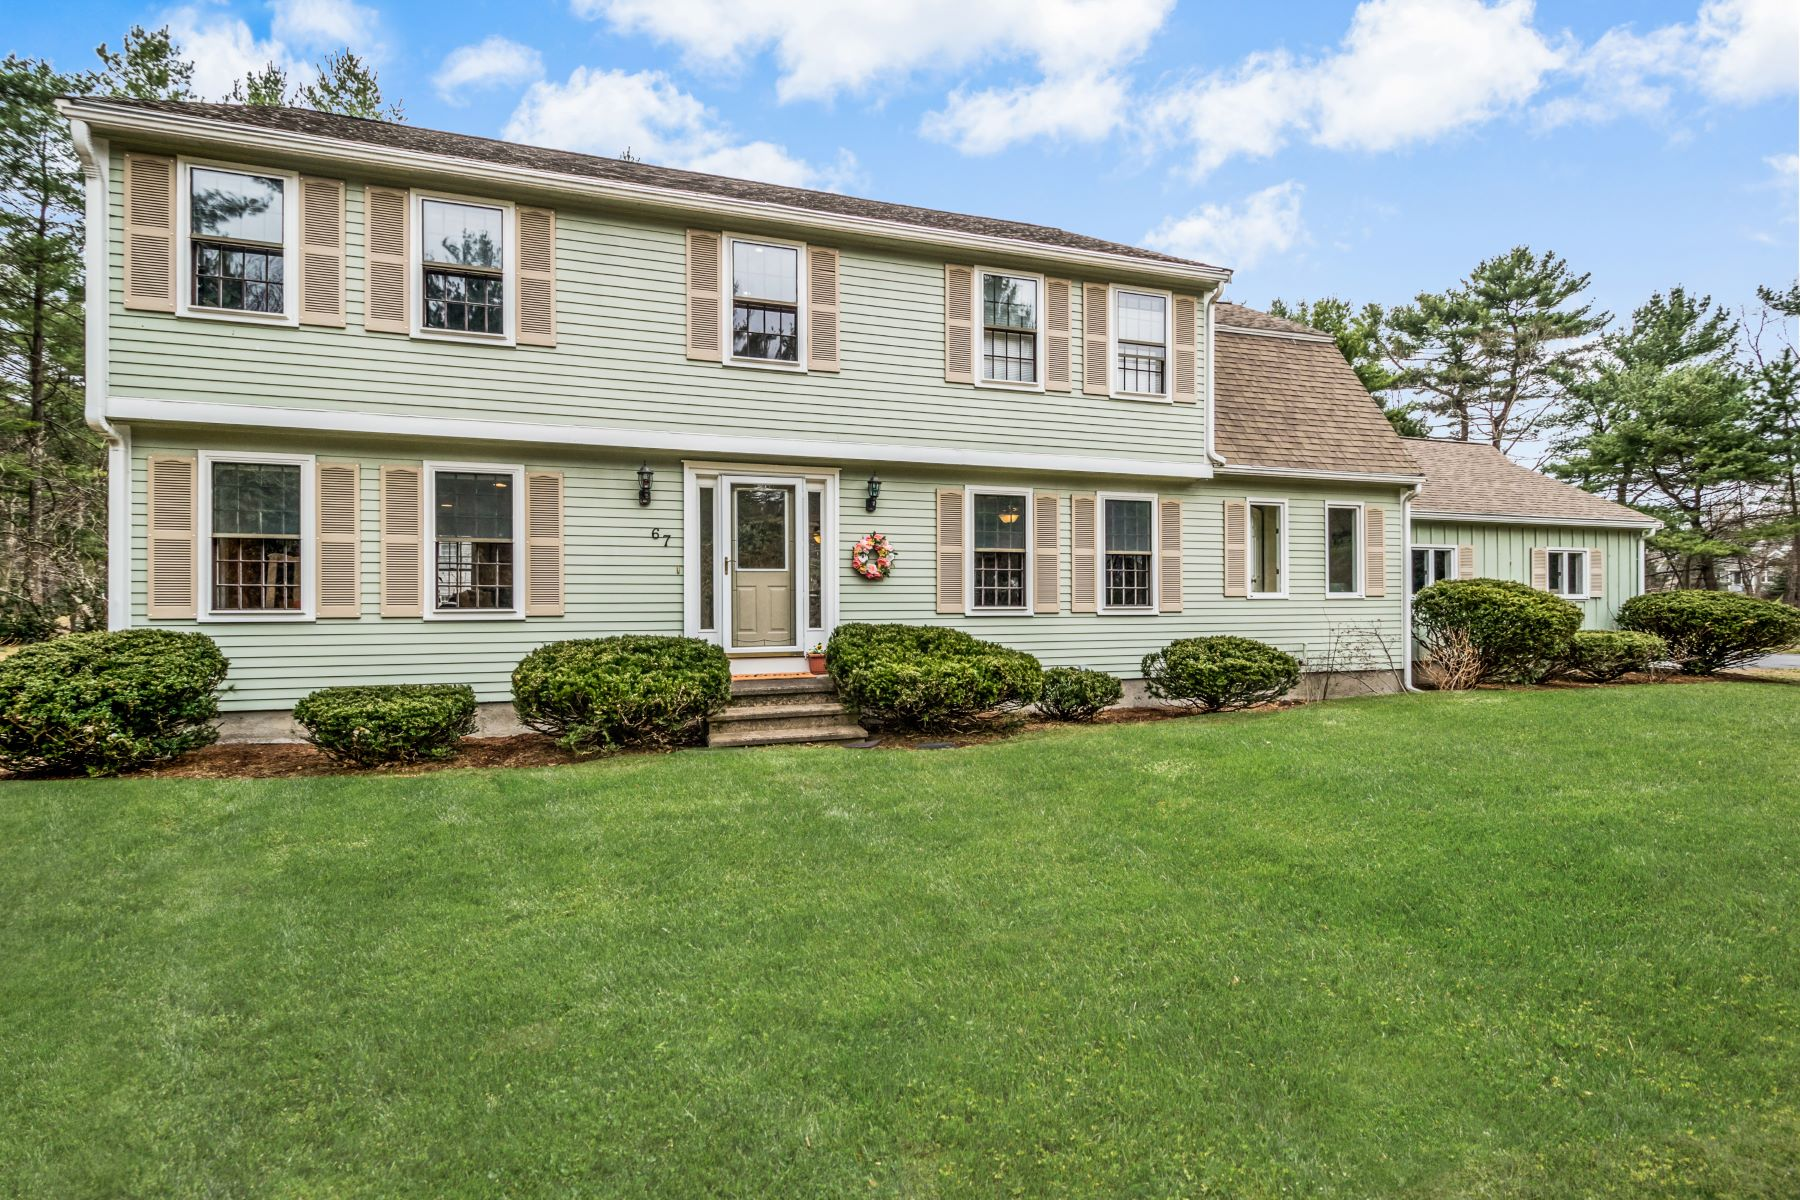 Single Family Home for Active at 67 Wildwood Rd Stow, Massachusetts 01775 United States